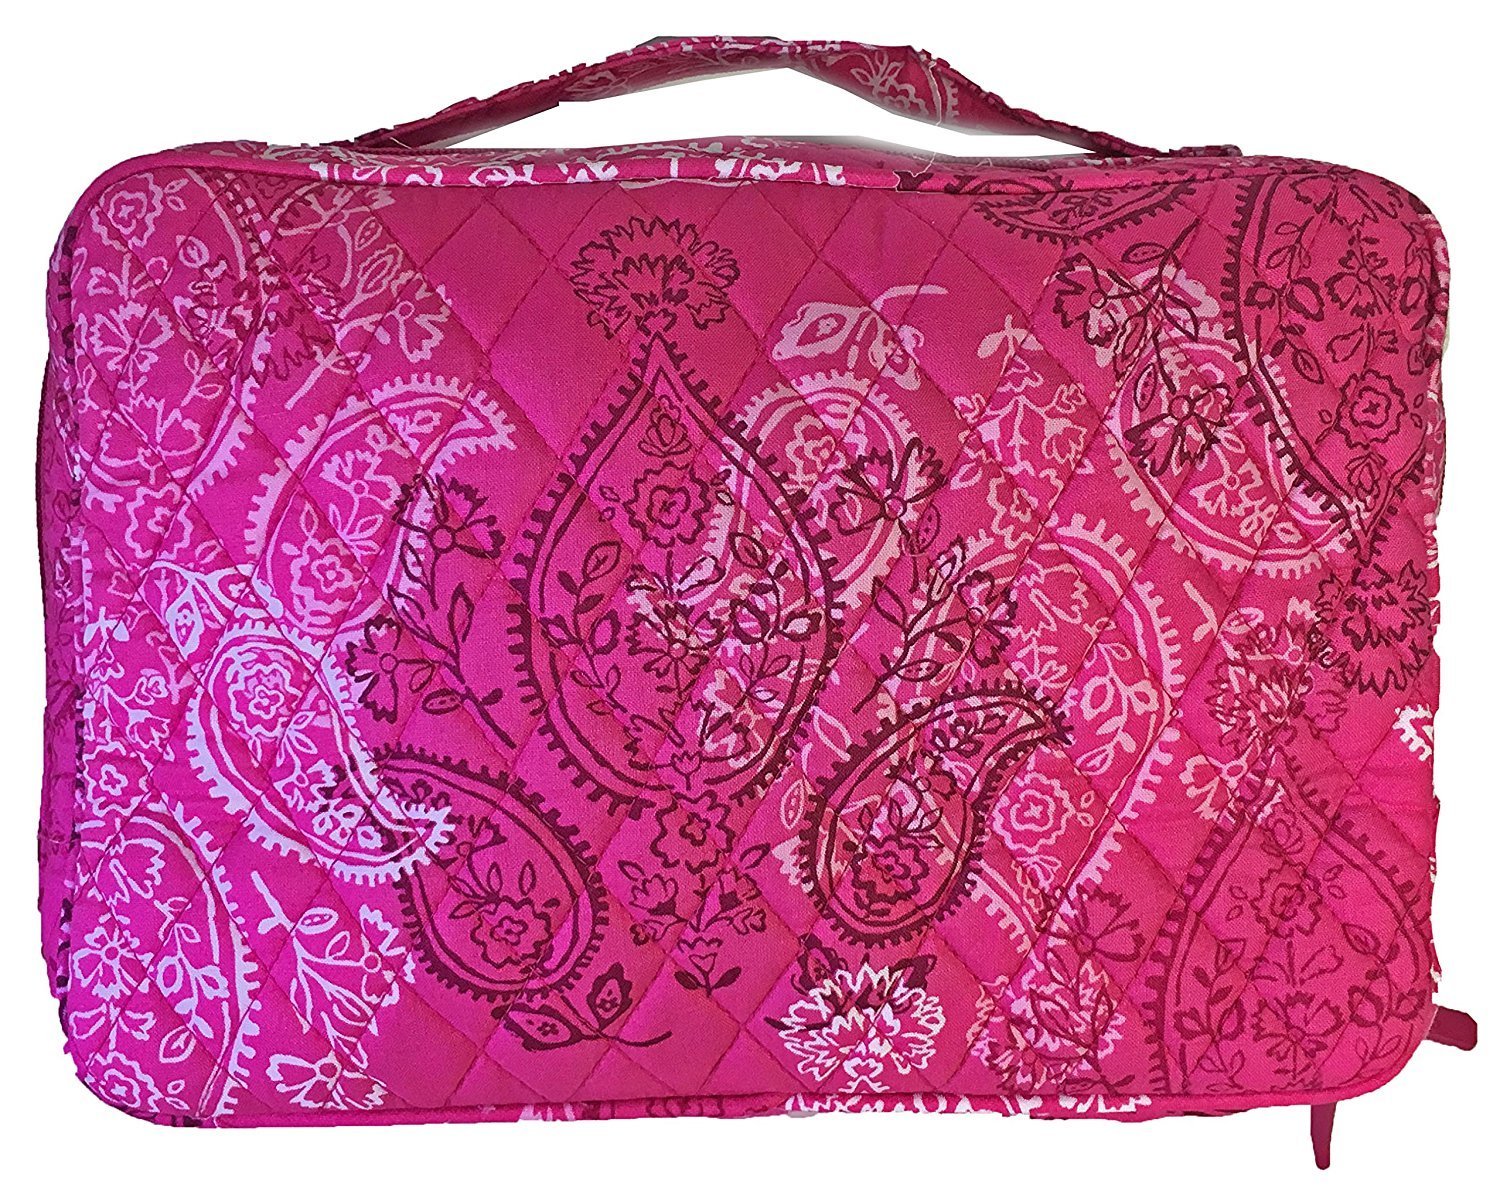 Vera Bradley Large Brush and Blush Makeup Case Stamped Paisley with Solid Pink Interior